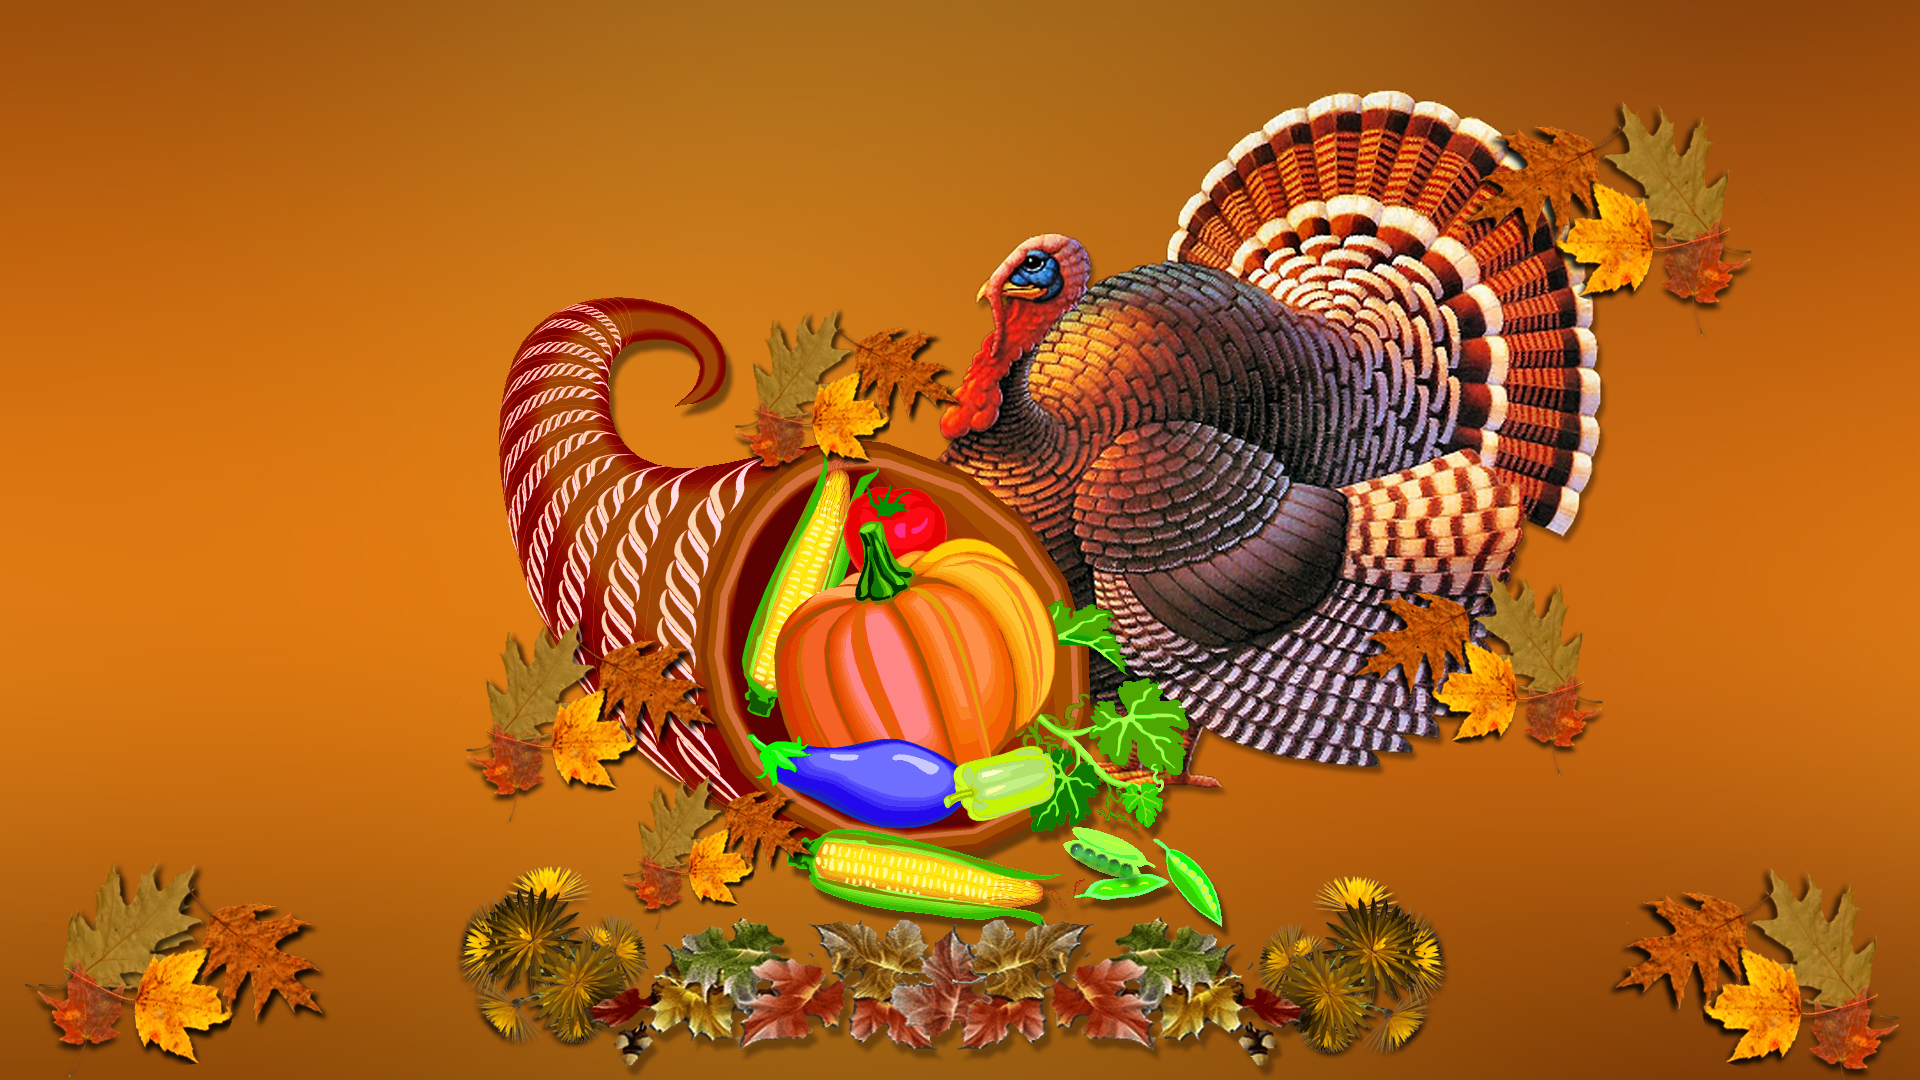 Turkeypicturesthanksgivingday2012wallpapers